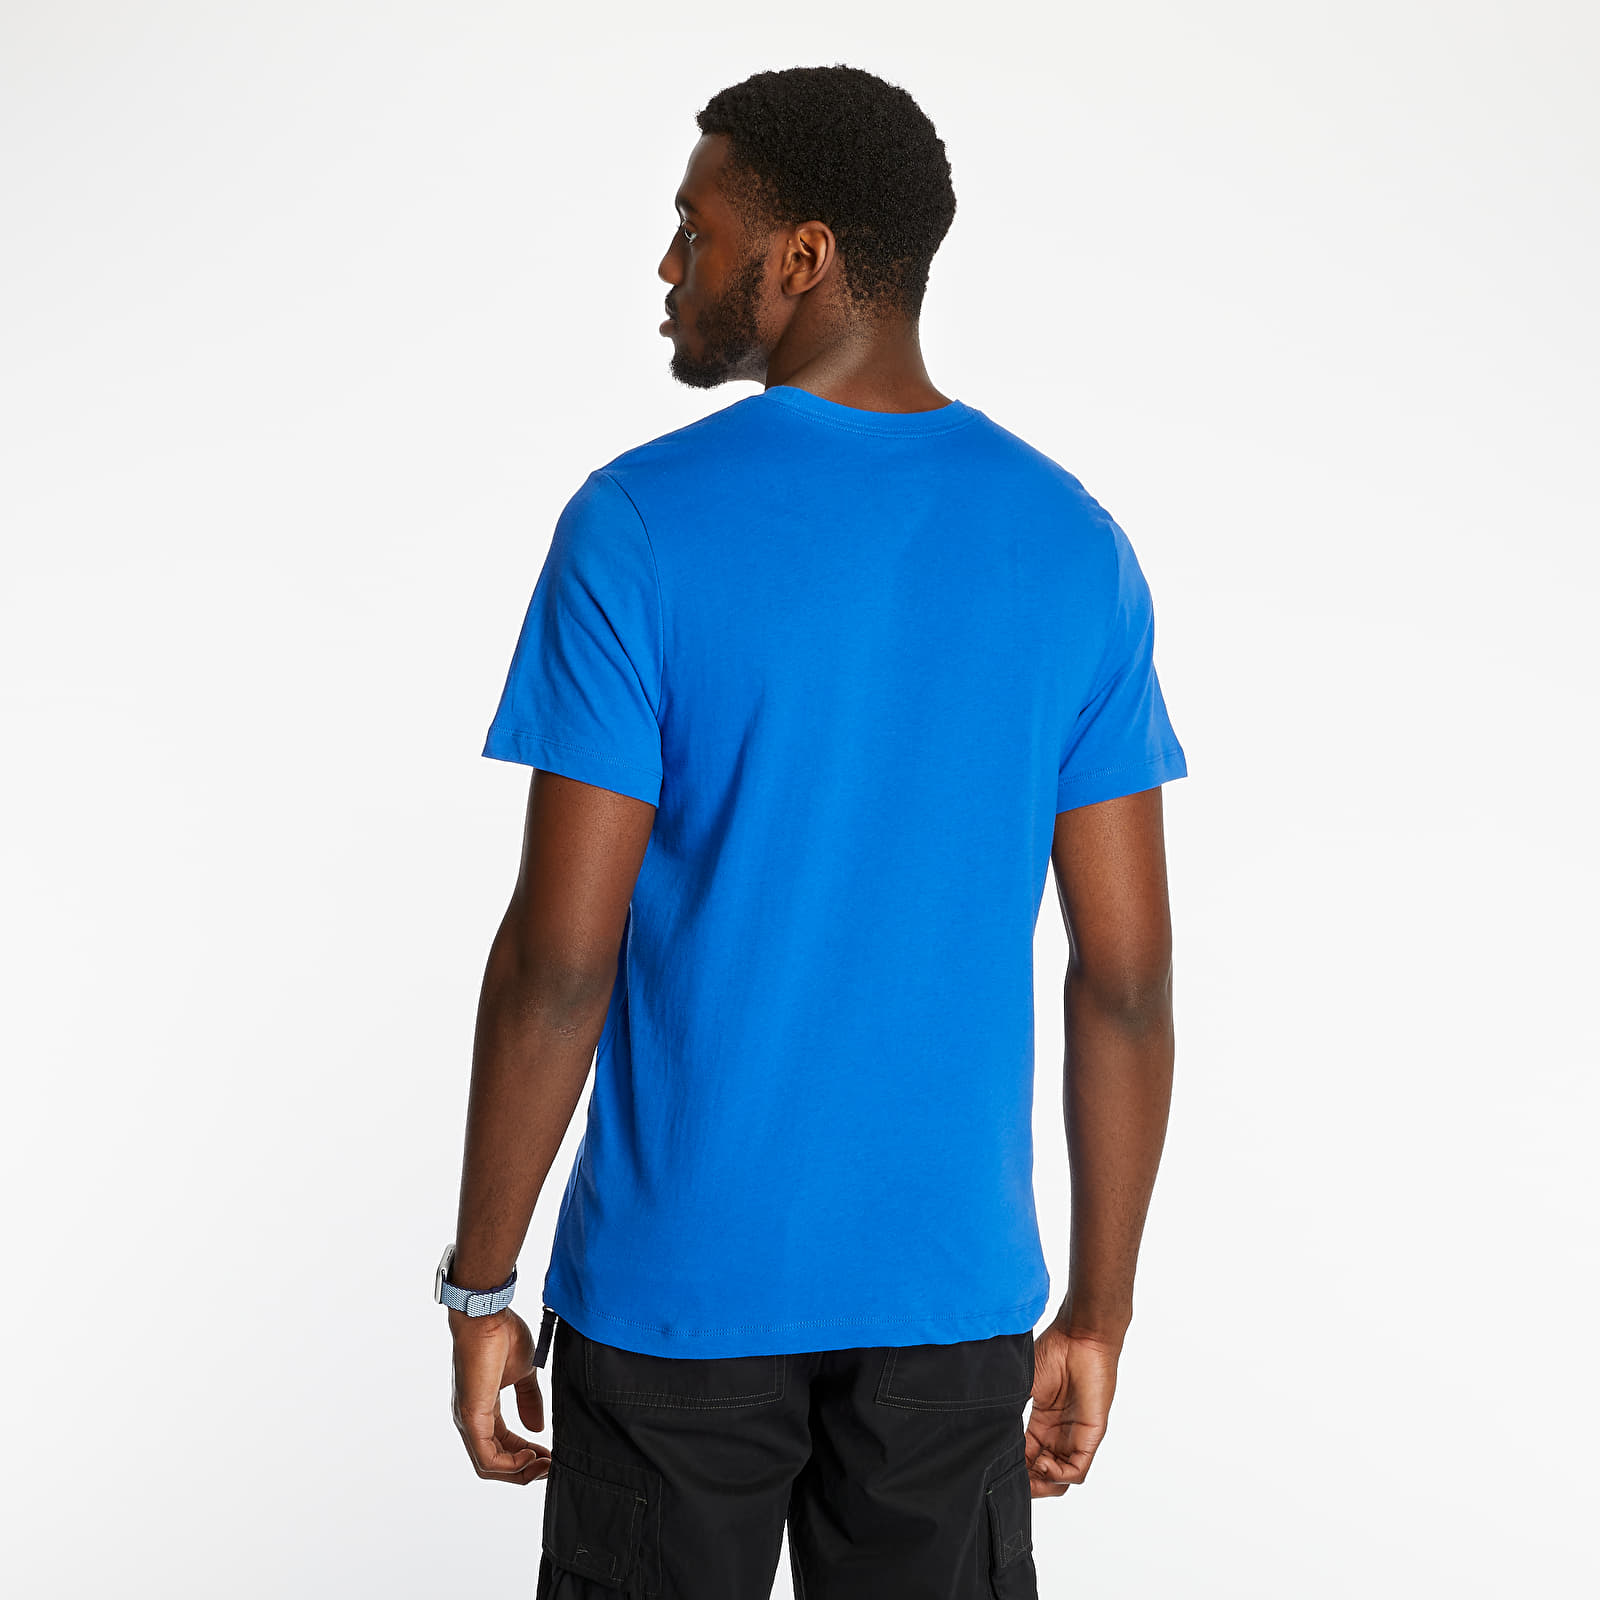 Nike Sportswear Just Do It Swoosh Tee Game Royal/ White, Blue